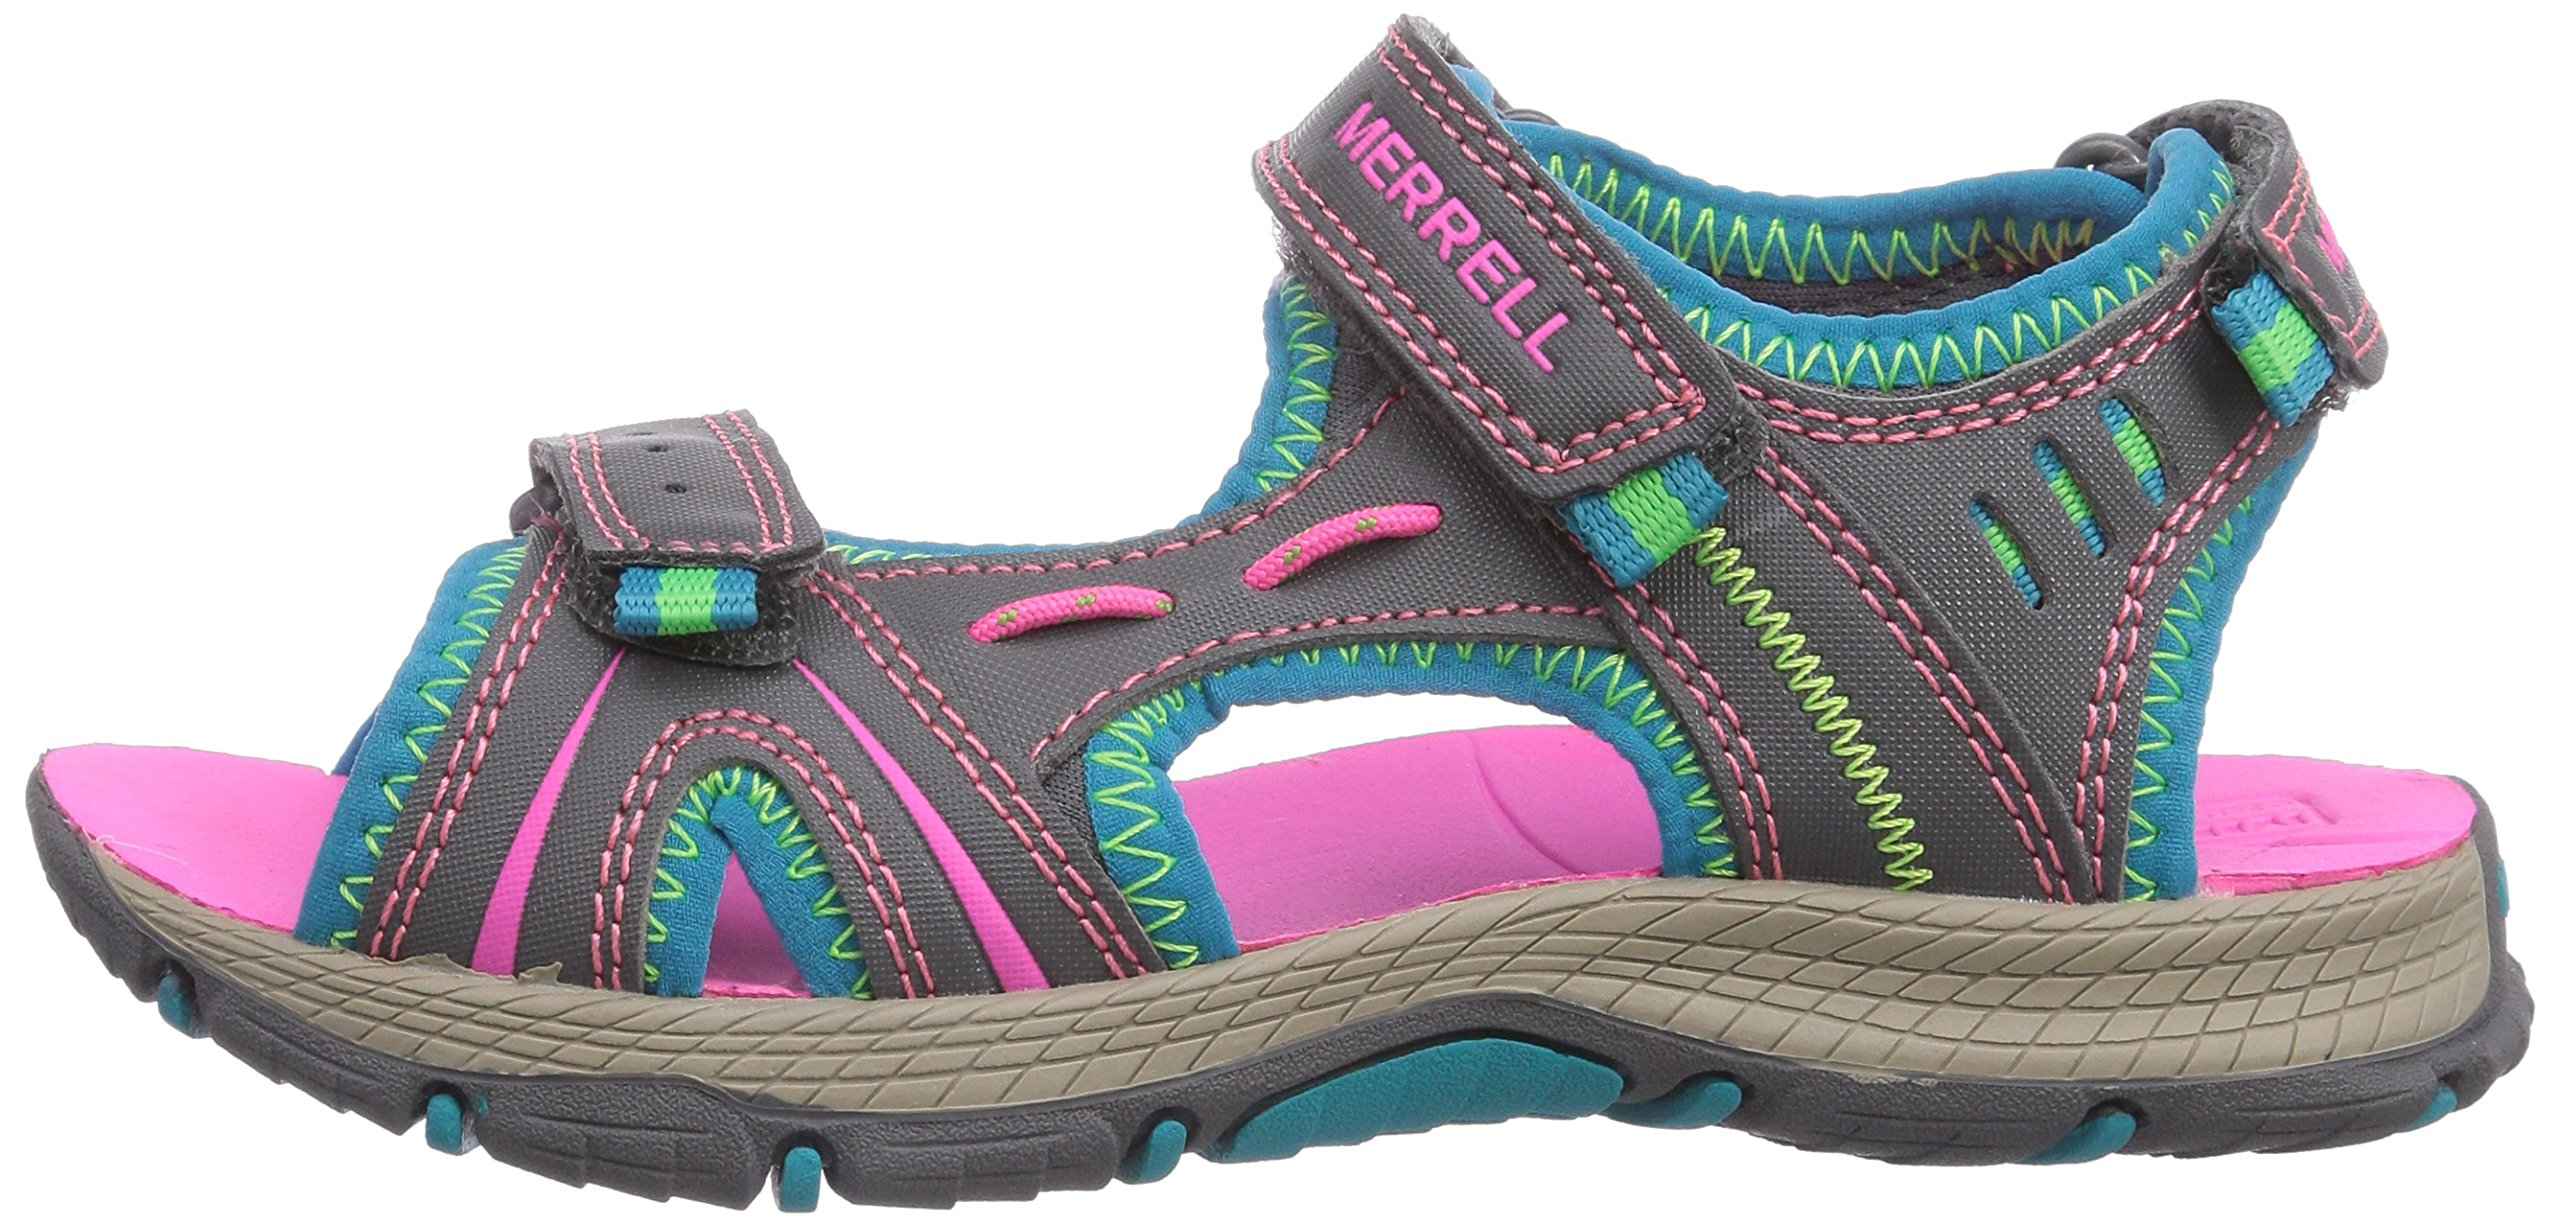 Merrell Panther Athletic Water Sandal , Blue/Pink/Green, 11 M US Little Kid by Merrell (Image #5)